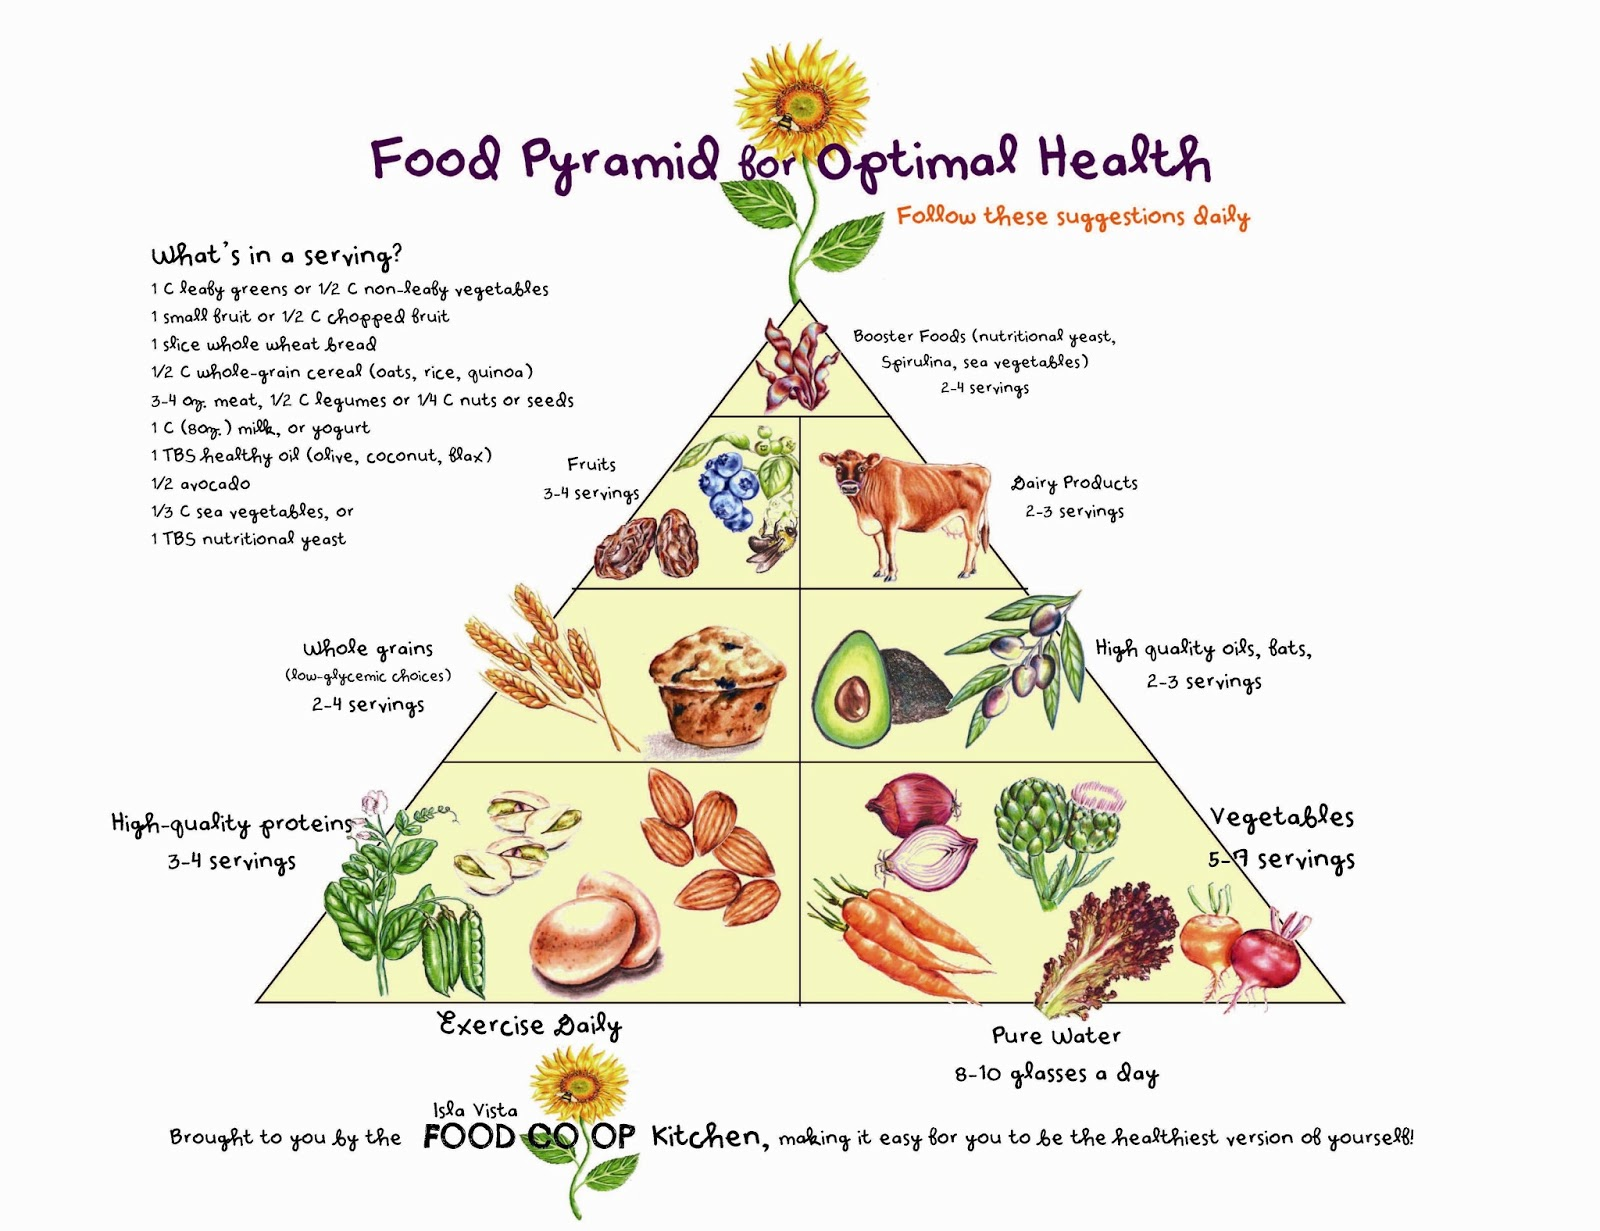 food pyramid essay View and download food pyramid essays examples also discover topics, titles, outlines, thesis statements, and conclusions for your food pyramid essay.